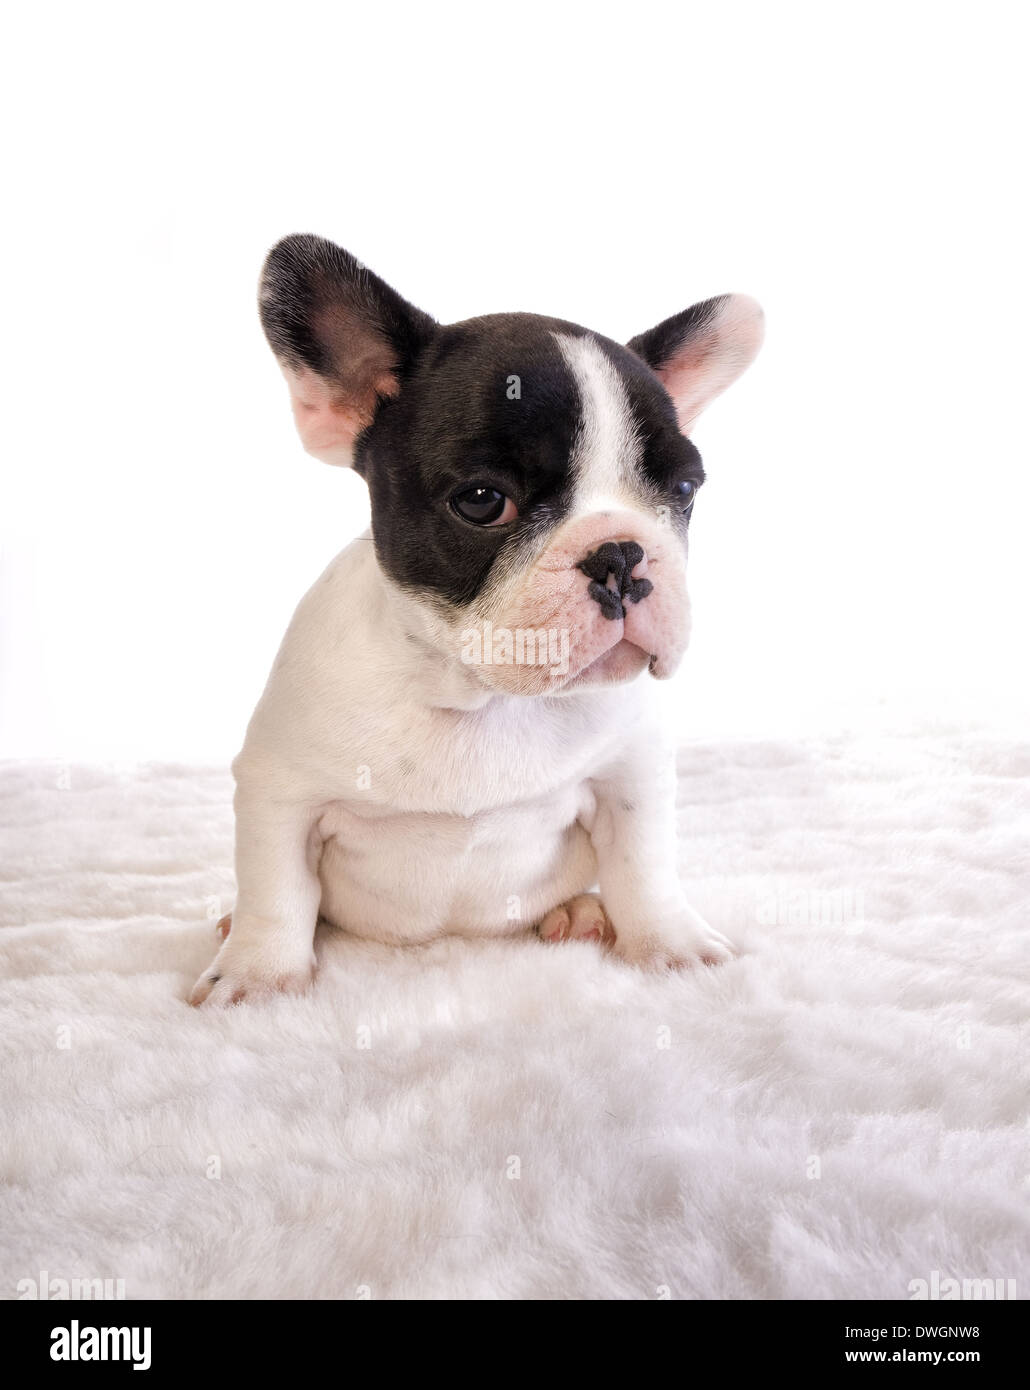 Fat Black And White French Bulldog Puppy On White Stock Photo